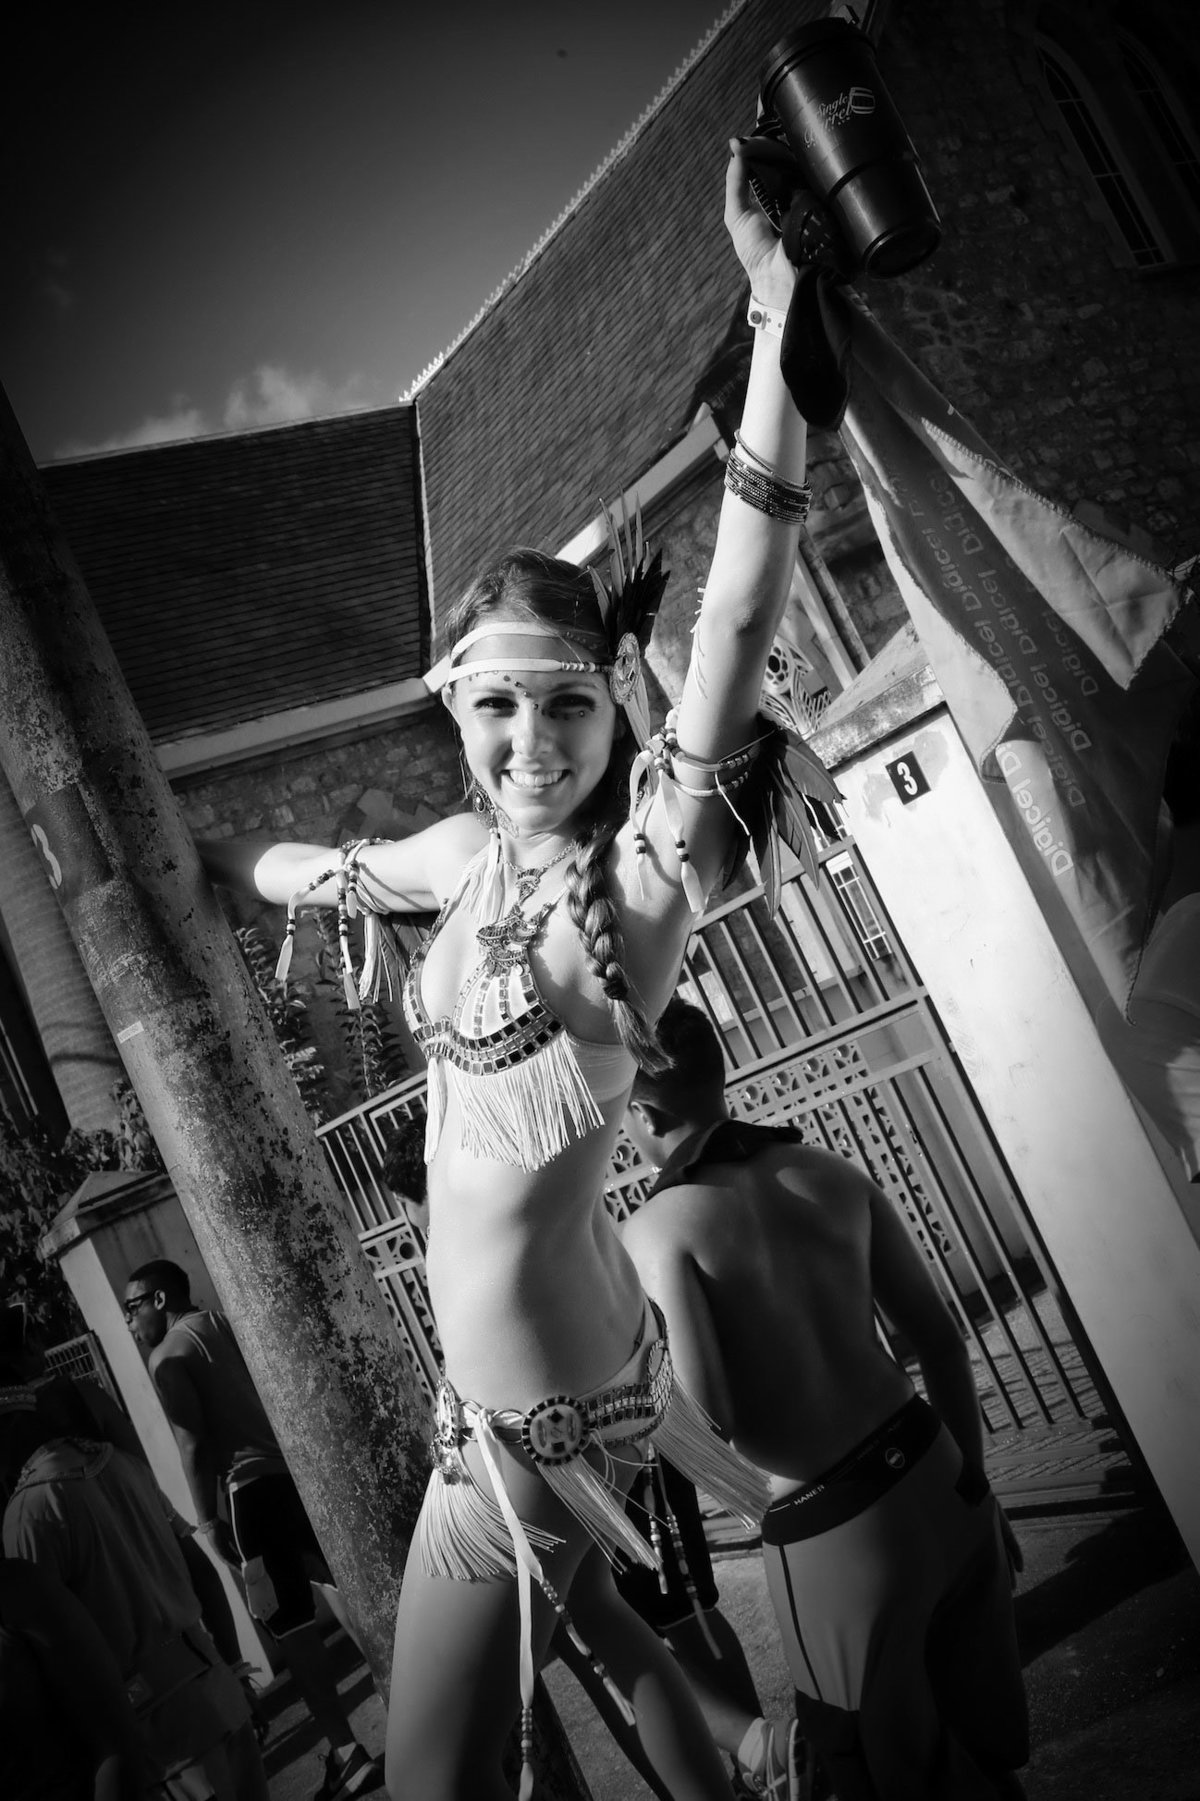 B+W image of female masquerader. Photo by Ross Photography, Trinidad, W.I..